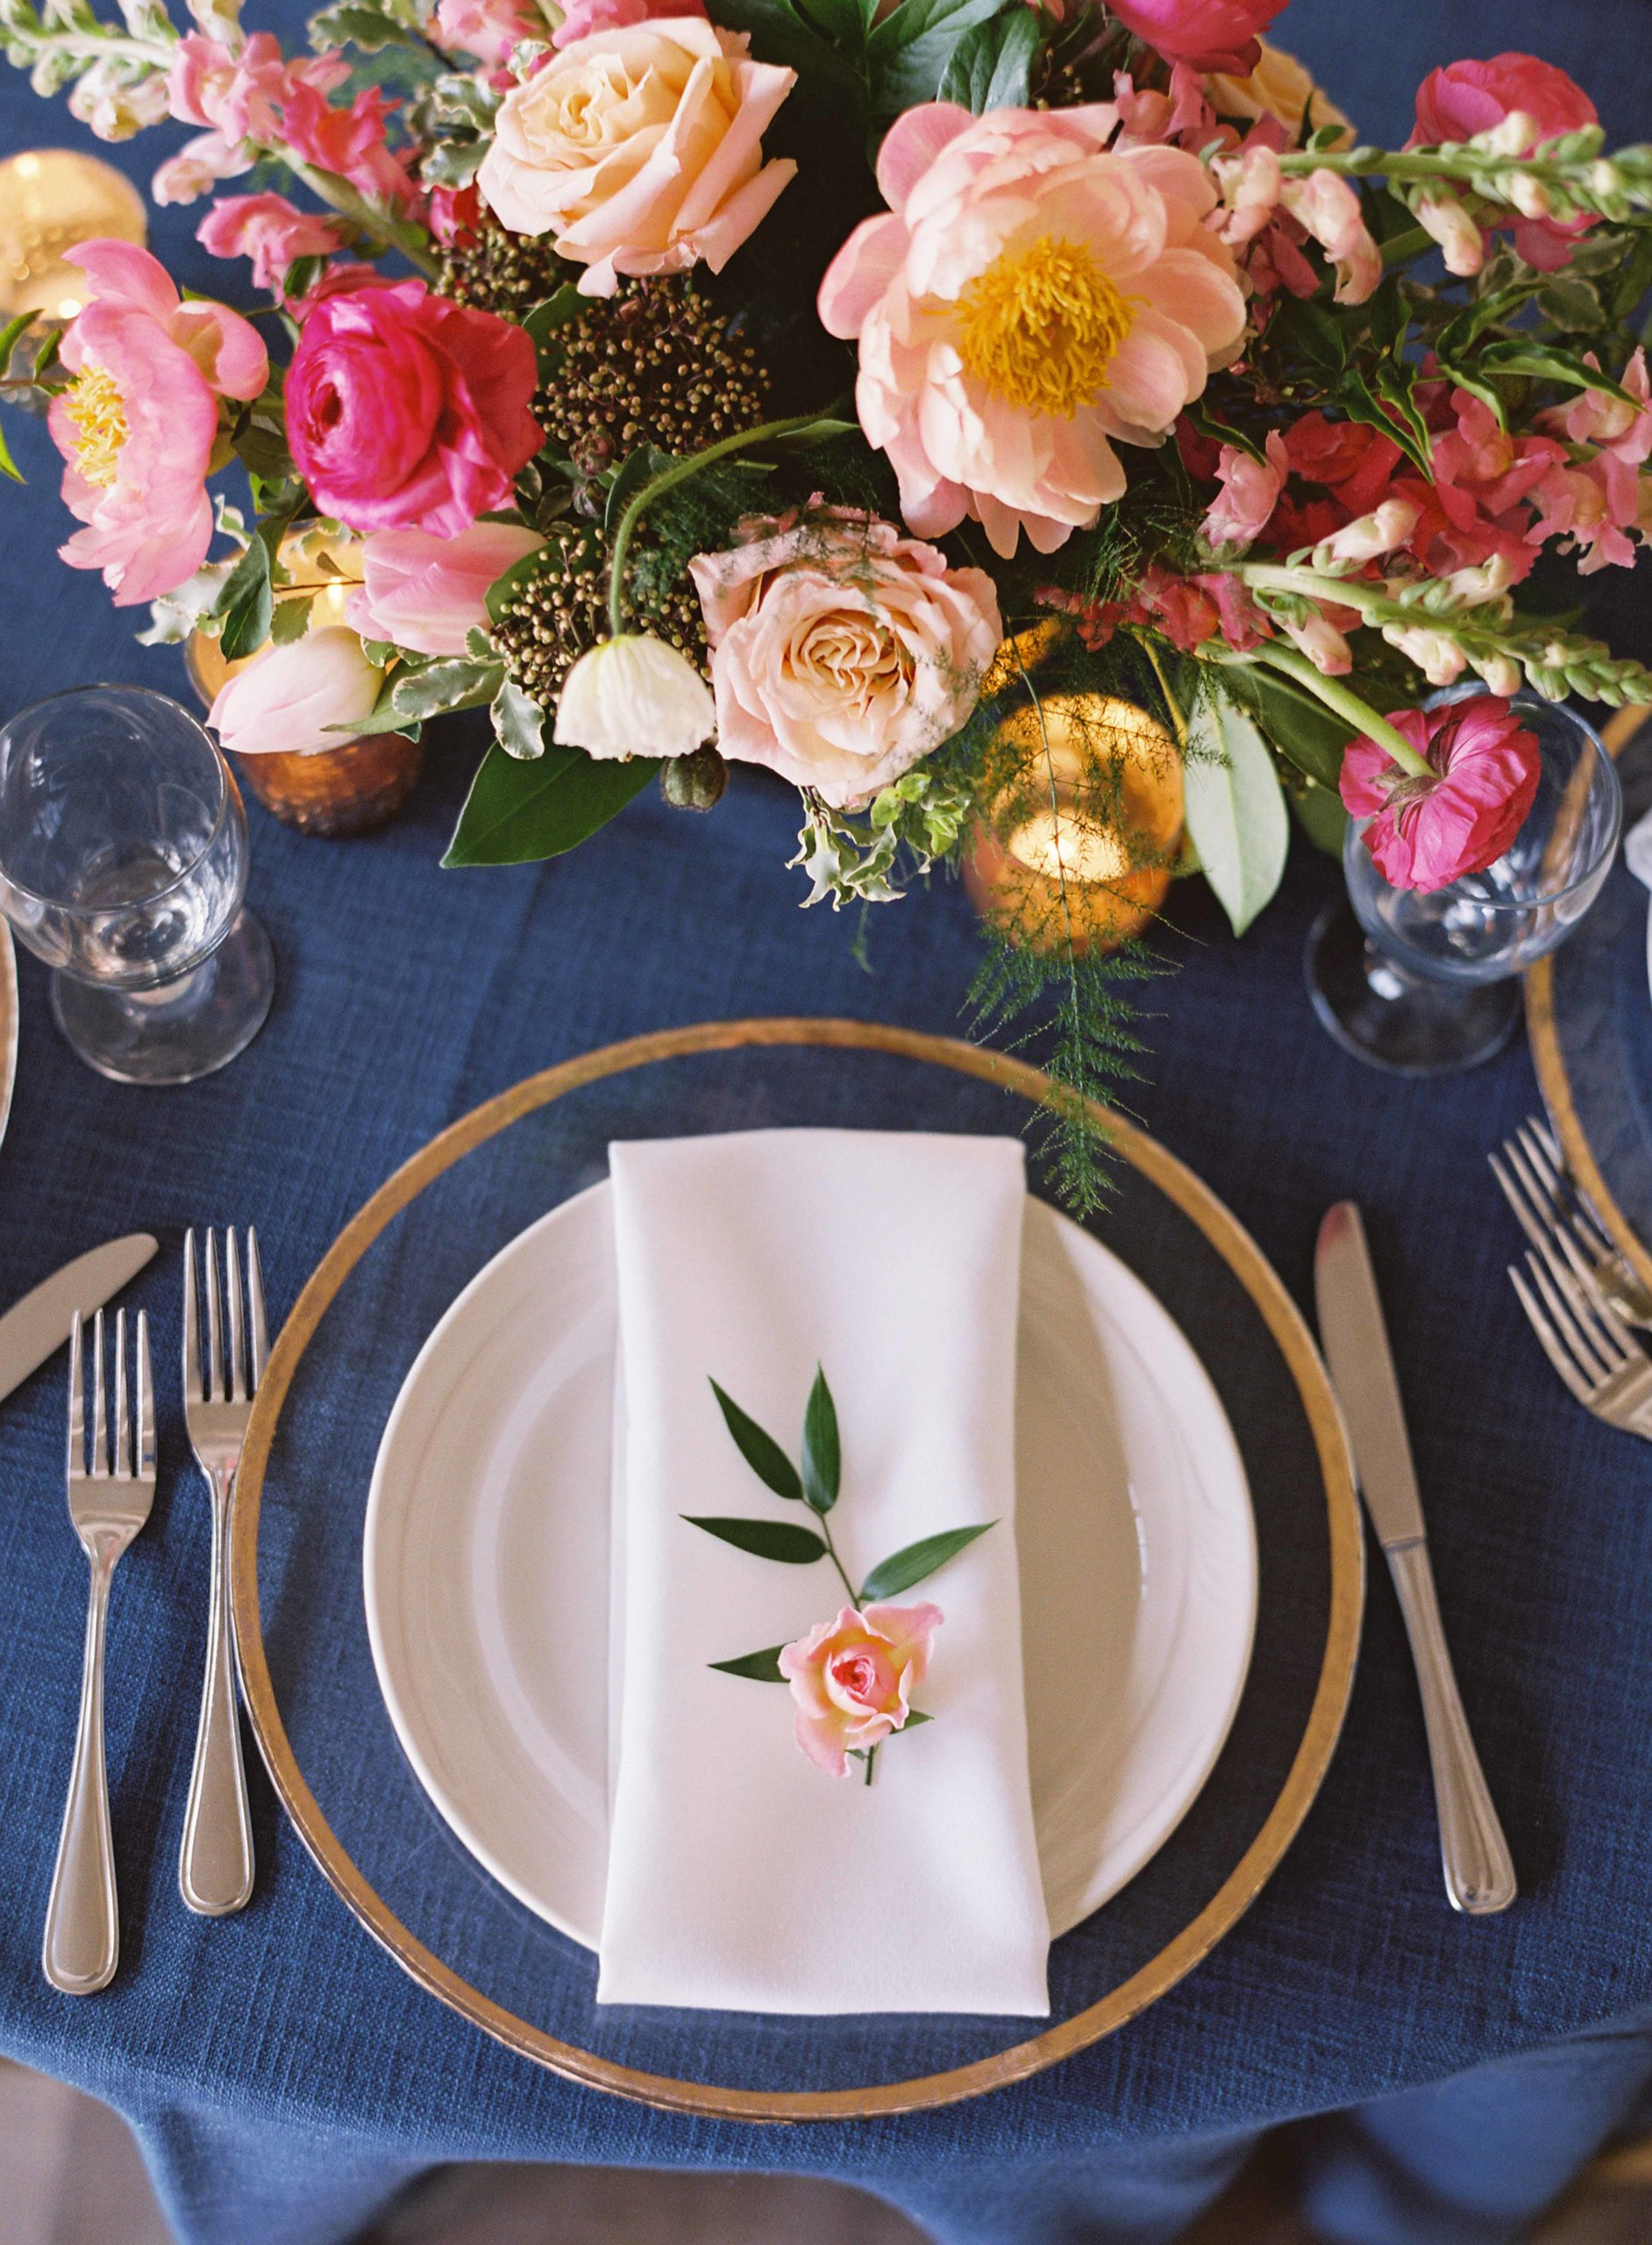 Hot pink and peach centerpiece next to gold charger plates, white napkin, and peach rose napkin flower - Seattle Wedding Flowers by Flora Nova Design; Hot pink and peach wedding at Roche Harbor Resort